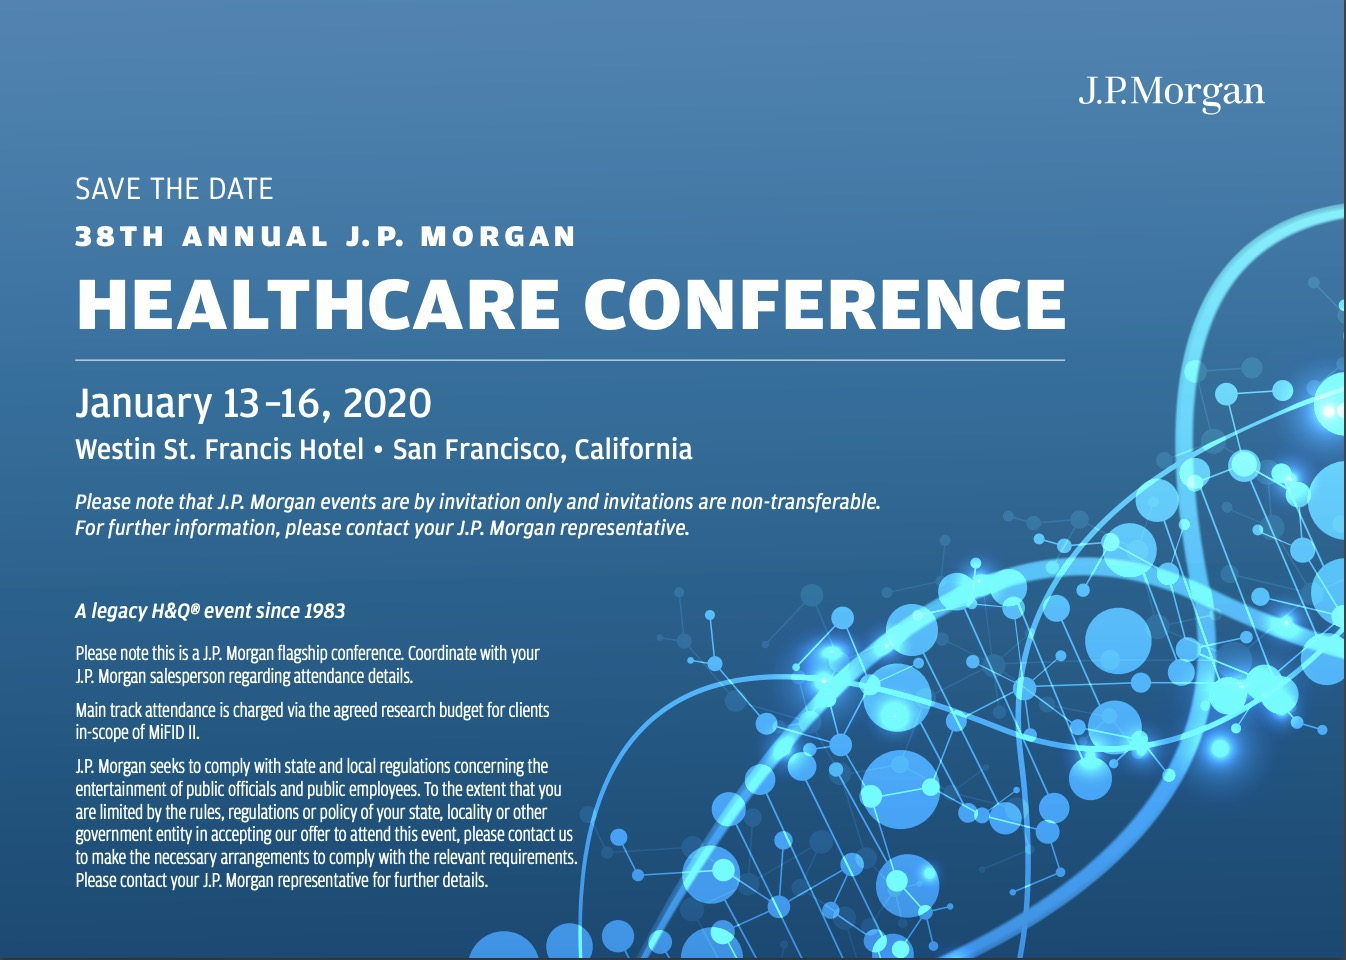 Vasomune Therapeutics is at the 38th J.P. Morgan Healthcare Conference